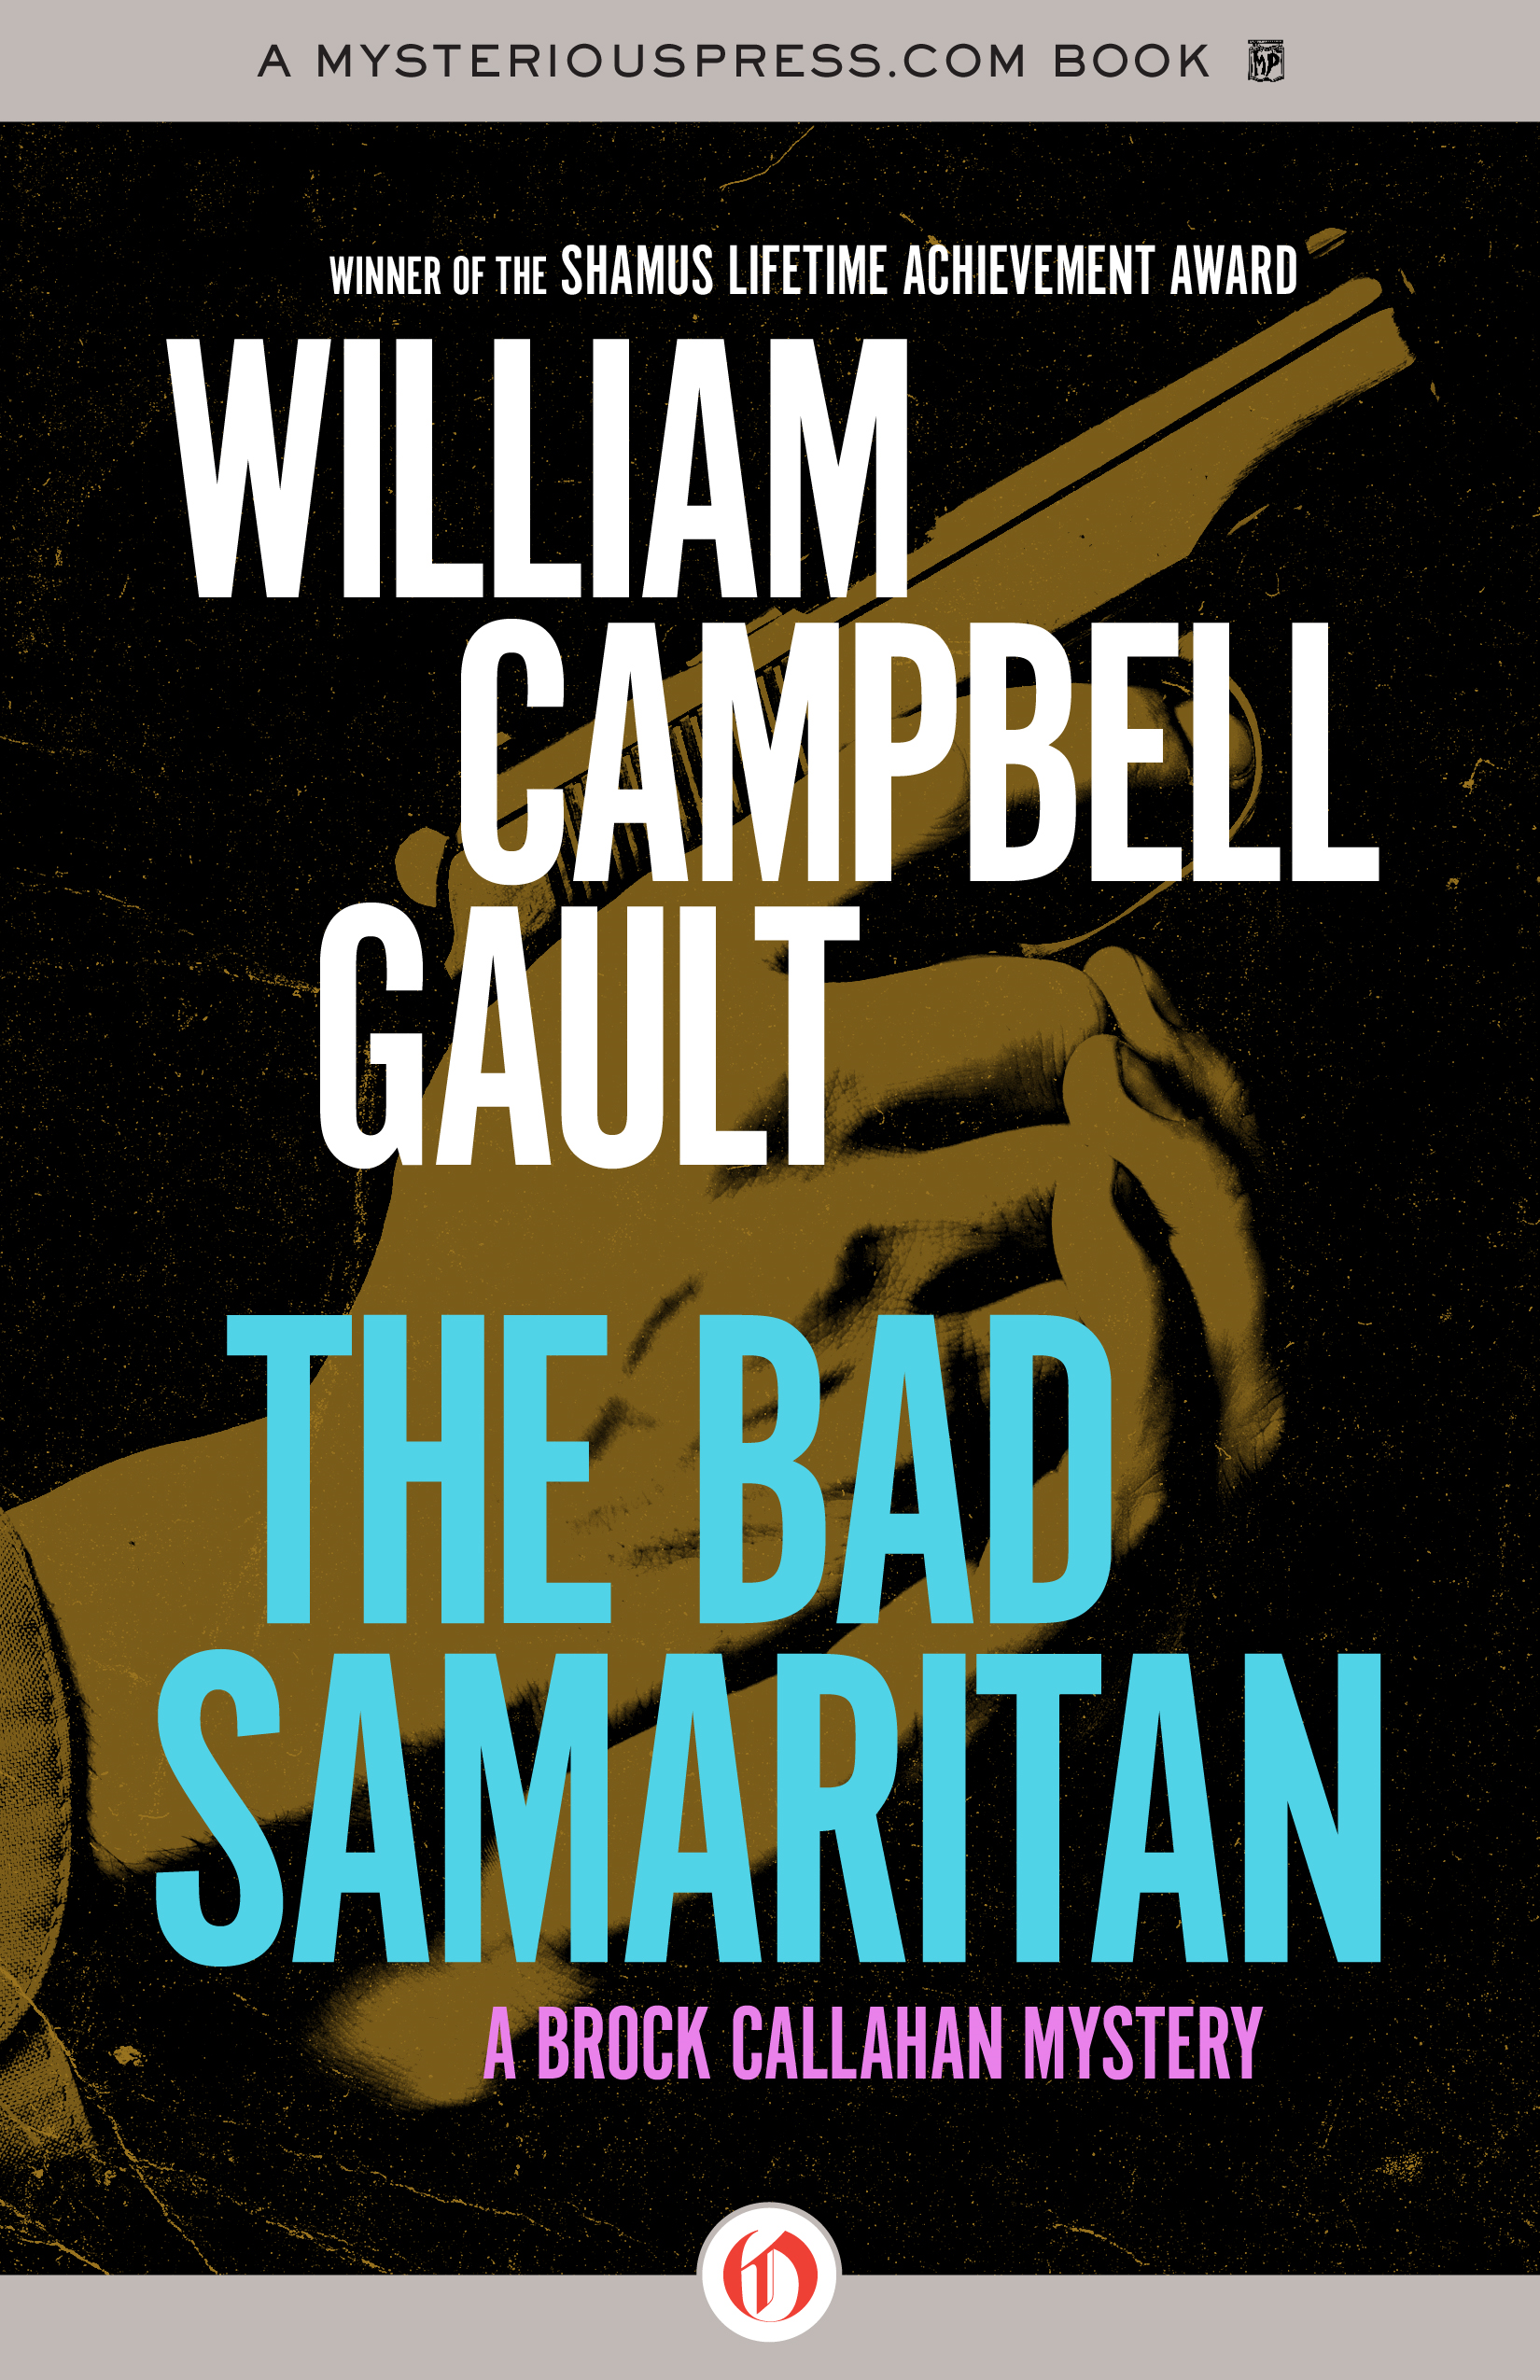 The Bad Samaritan: A Brock Callahan Mystery By: William Campbell Gault